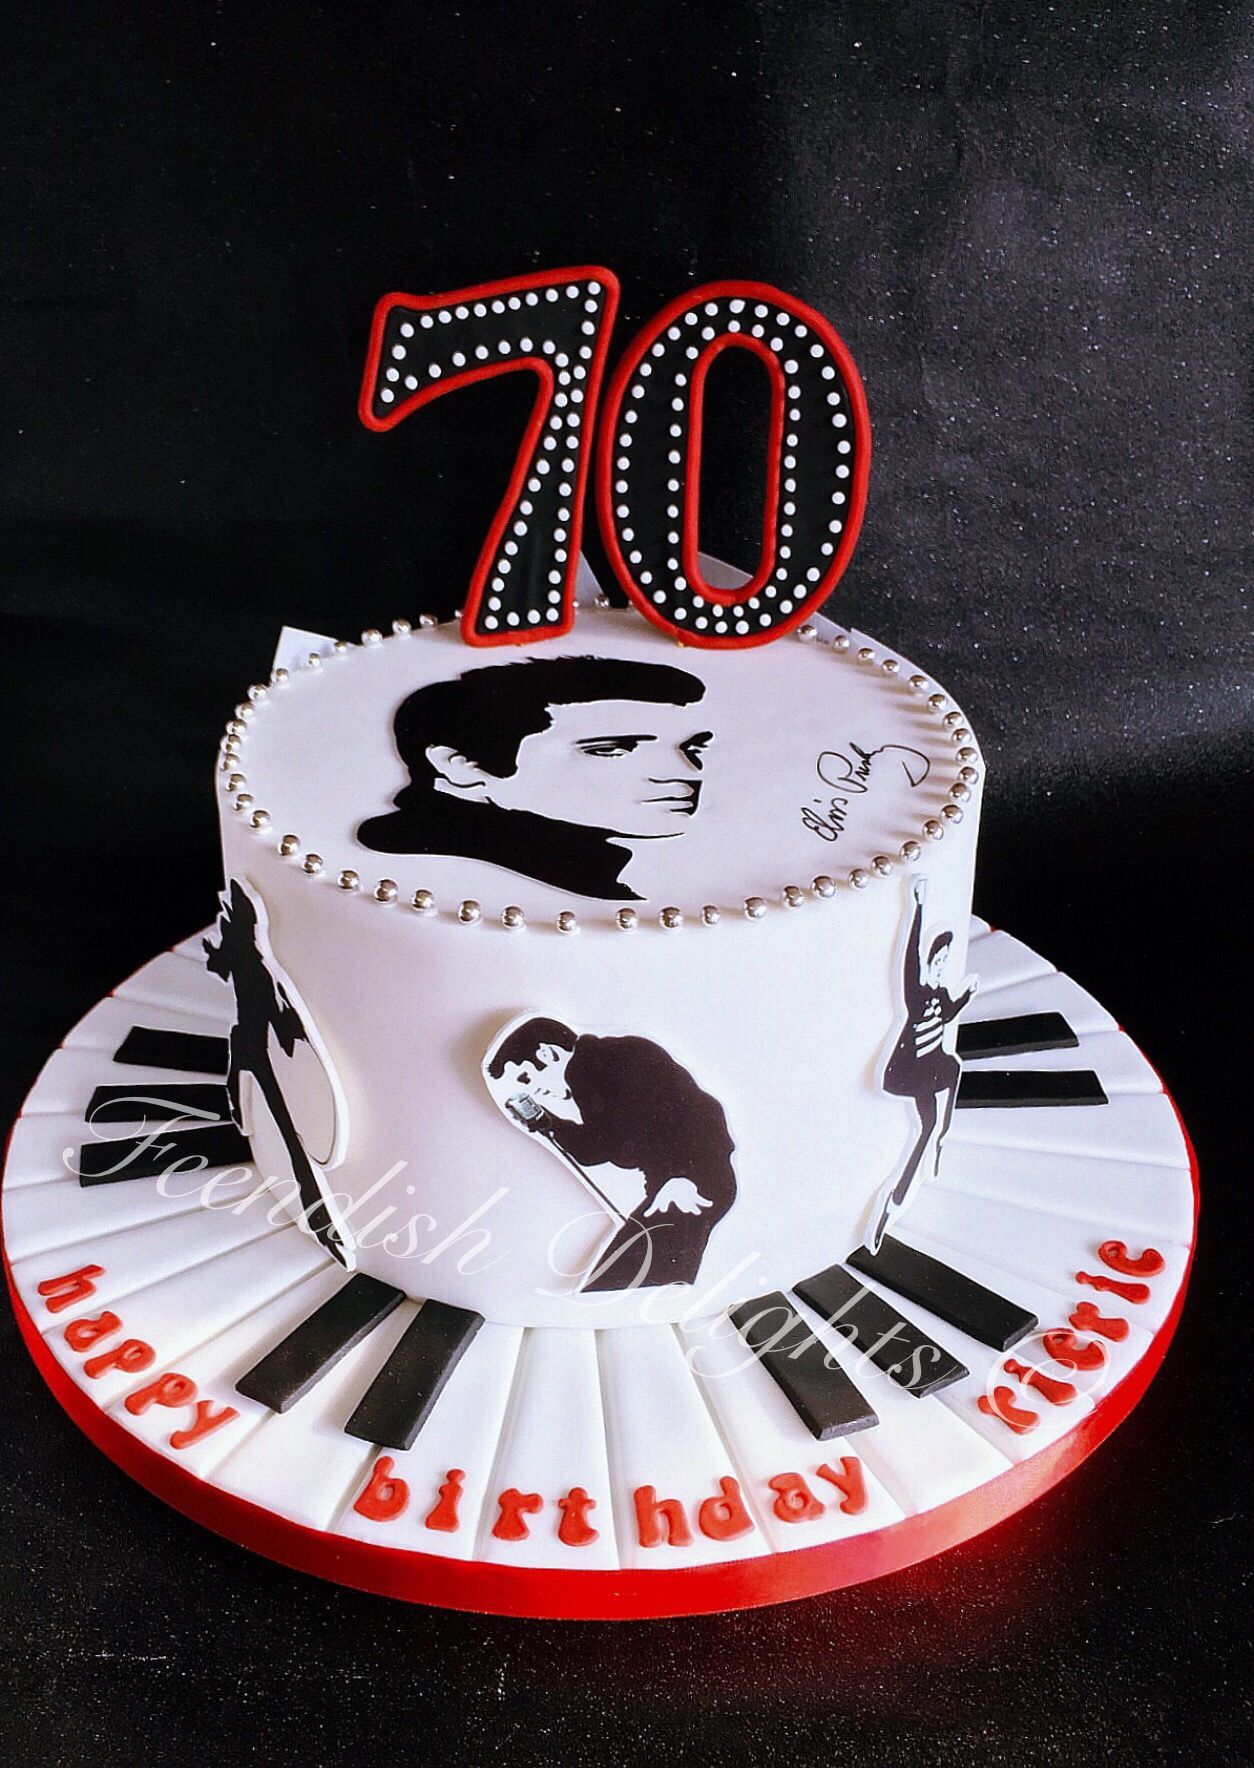 Ganache Inside Edible Prints Around The Sides And For Hand Cut Silhouette On Top Elvispresley Lemoncake Birthdaycake Surprise Piano Music